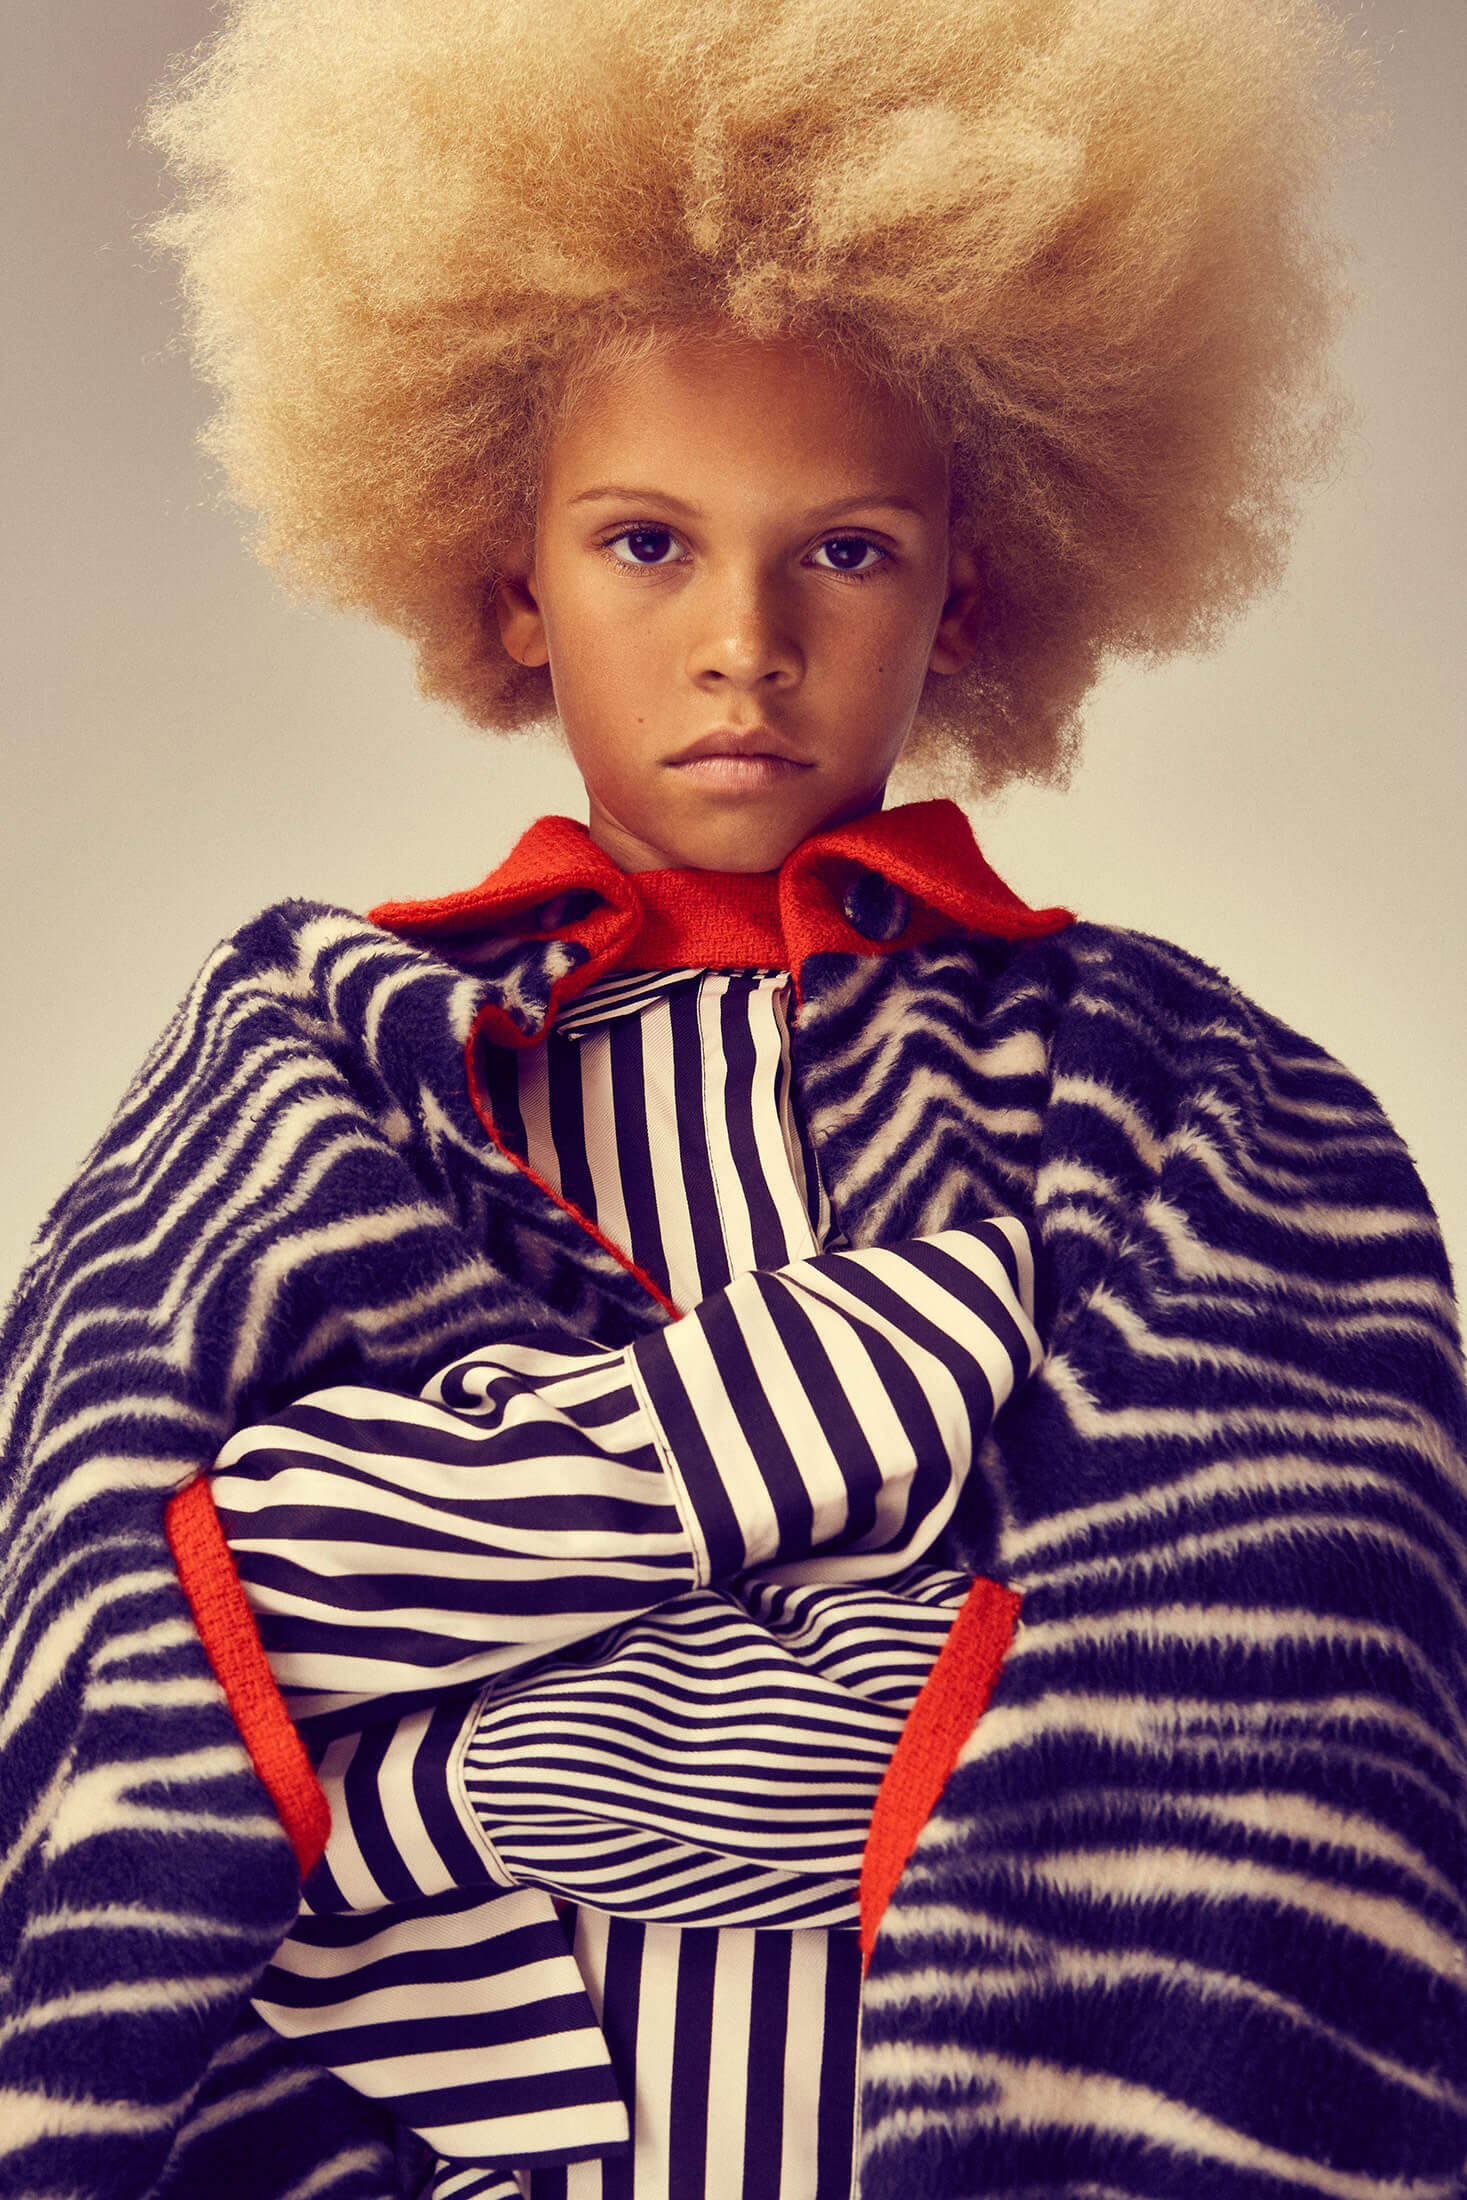 Children fashion Photographer | VIKA POBEDA | Hooligans |